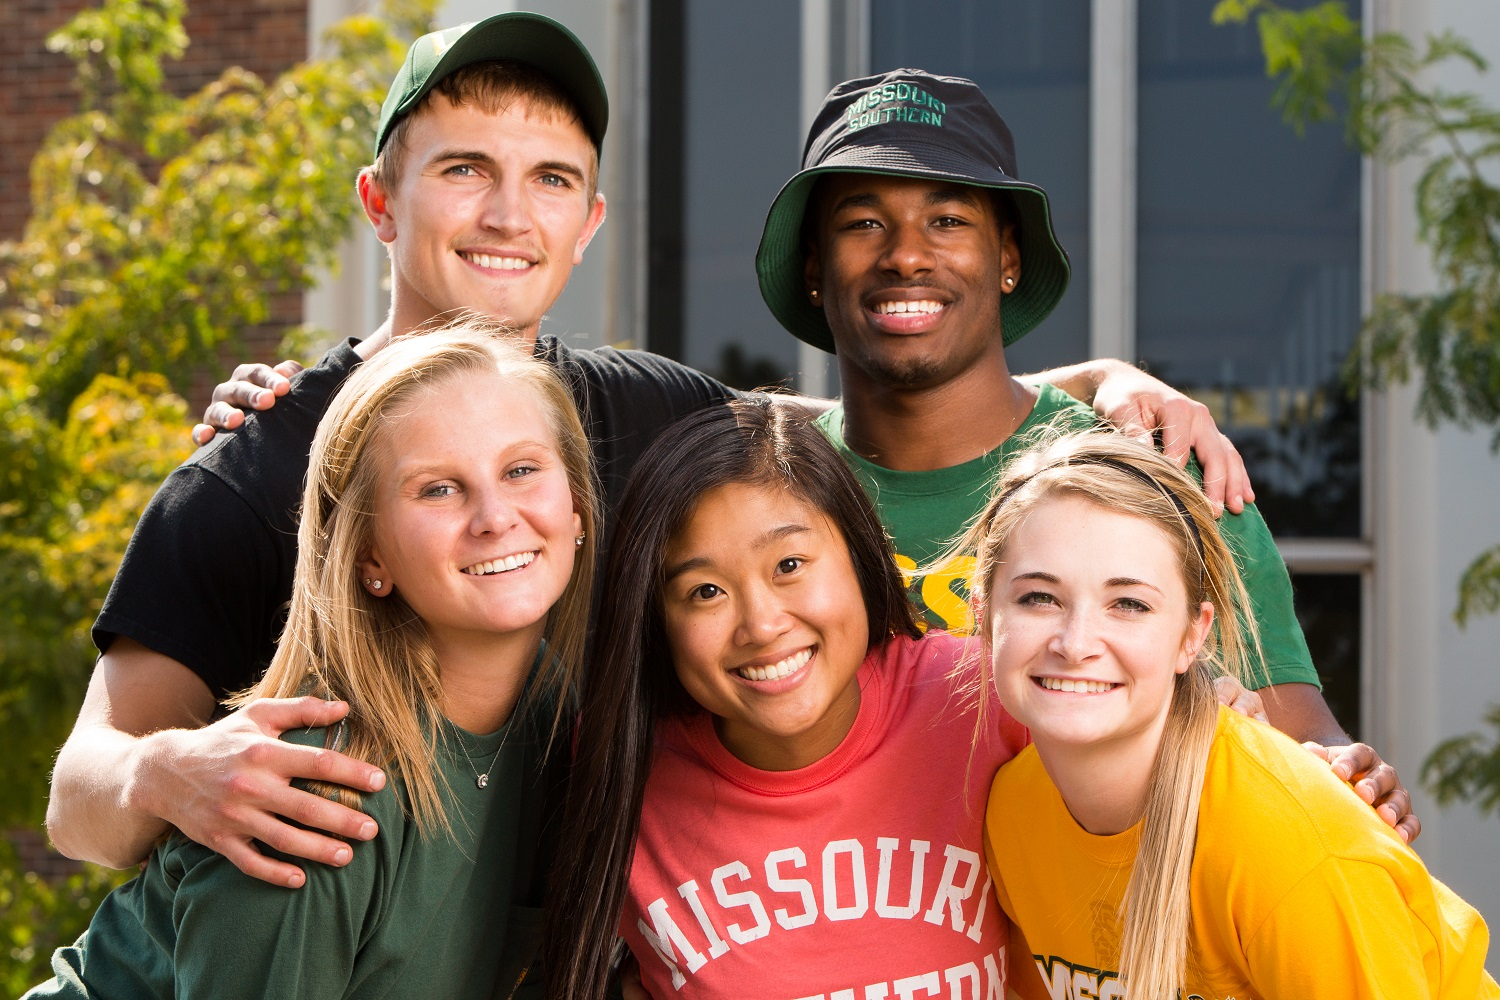 Missouri Southern sees growth in enrollment